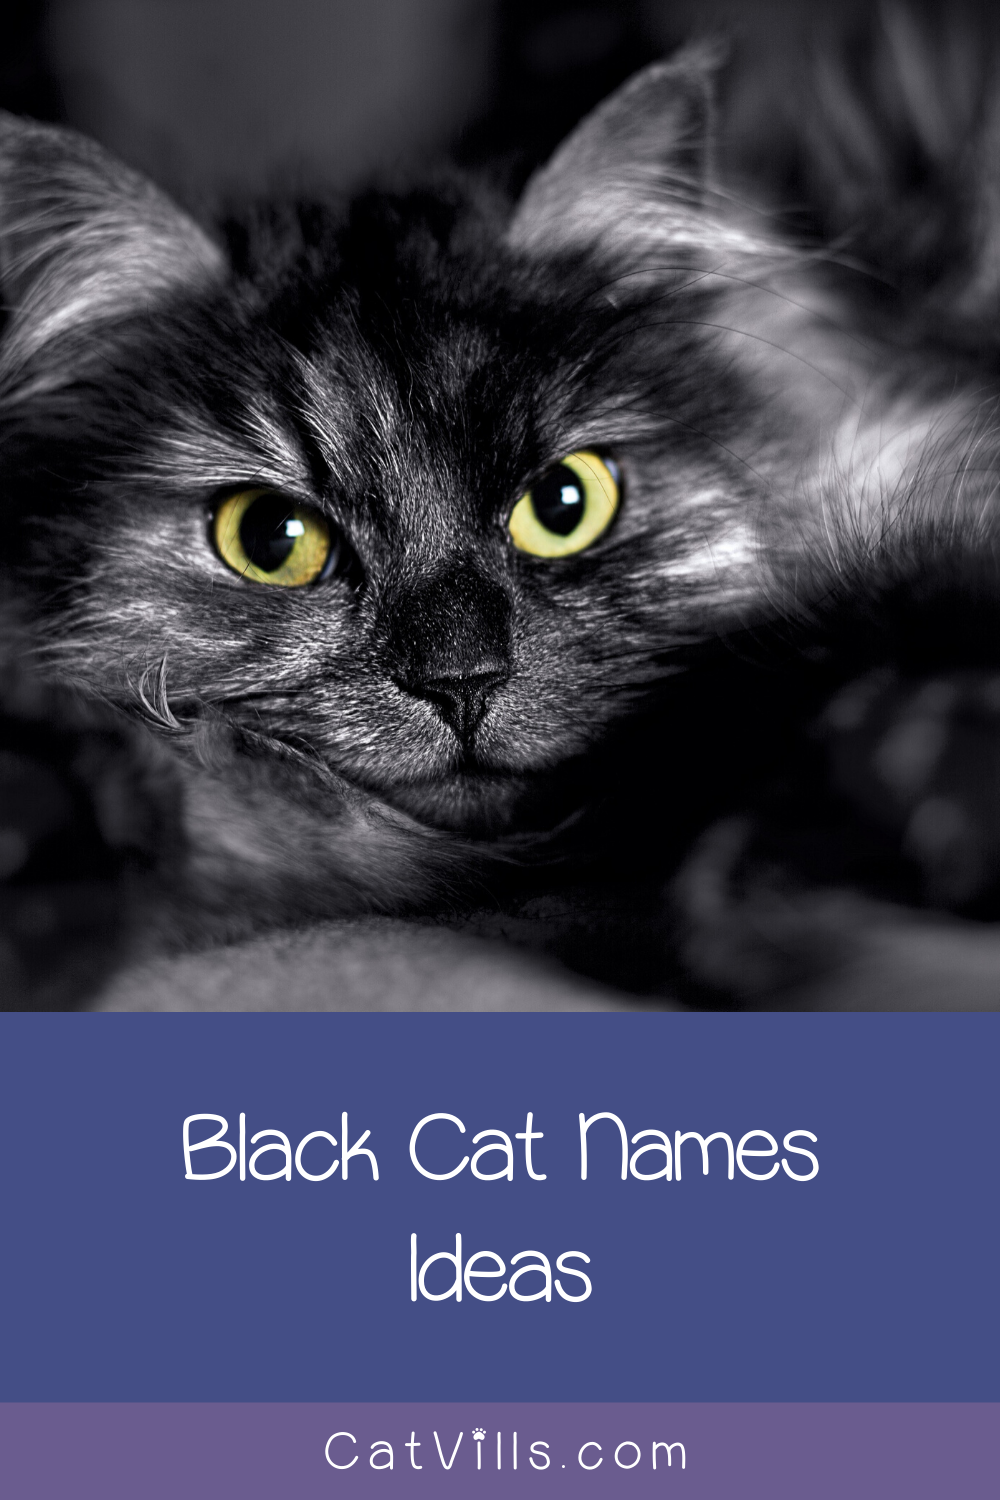 40 Memorable Black Cat Names From Movies in 2020 Cat